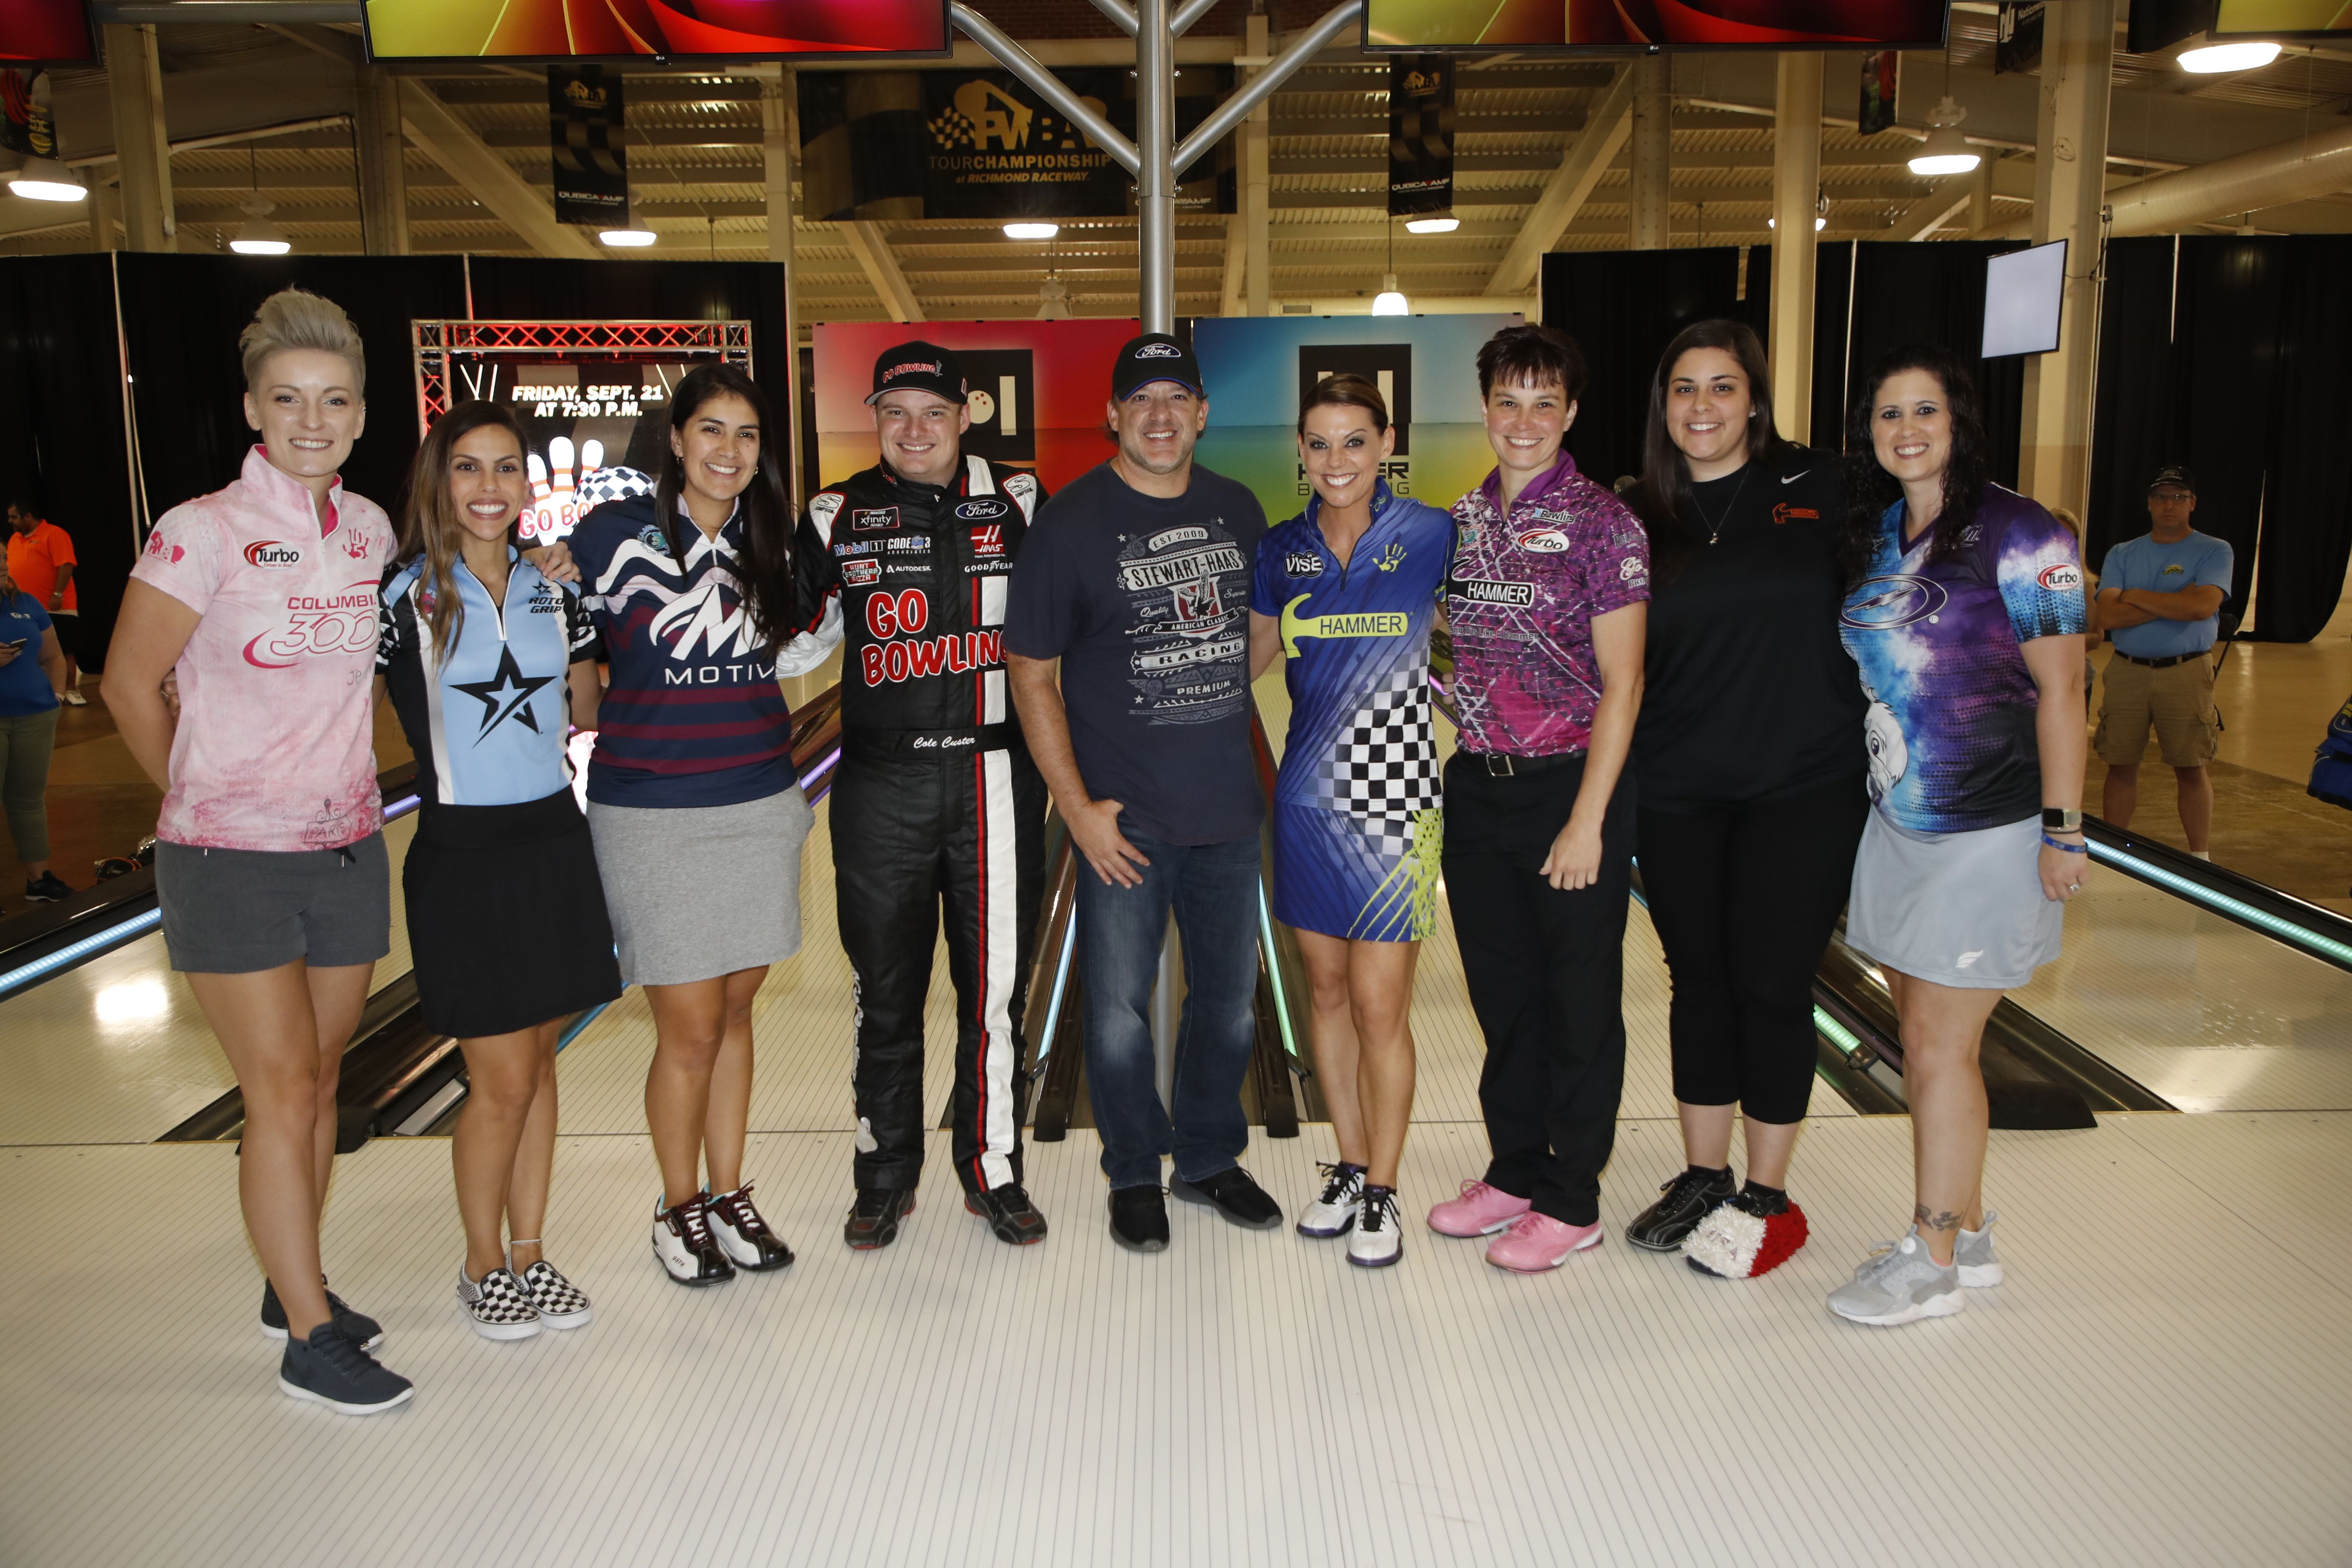 Bowlers and Racecar Driver